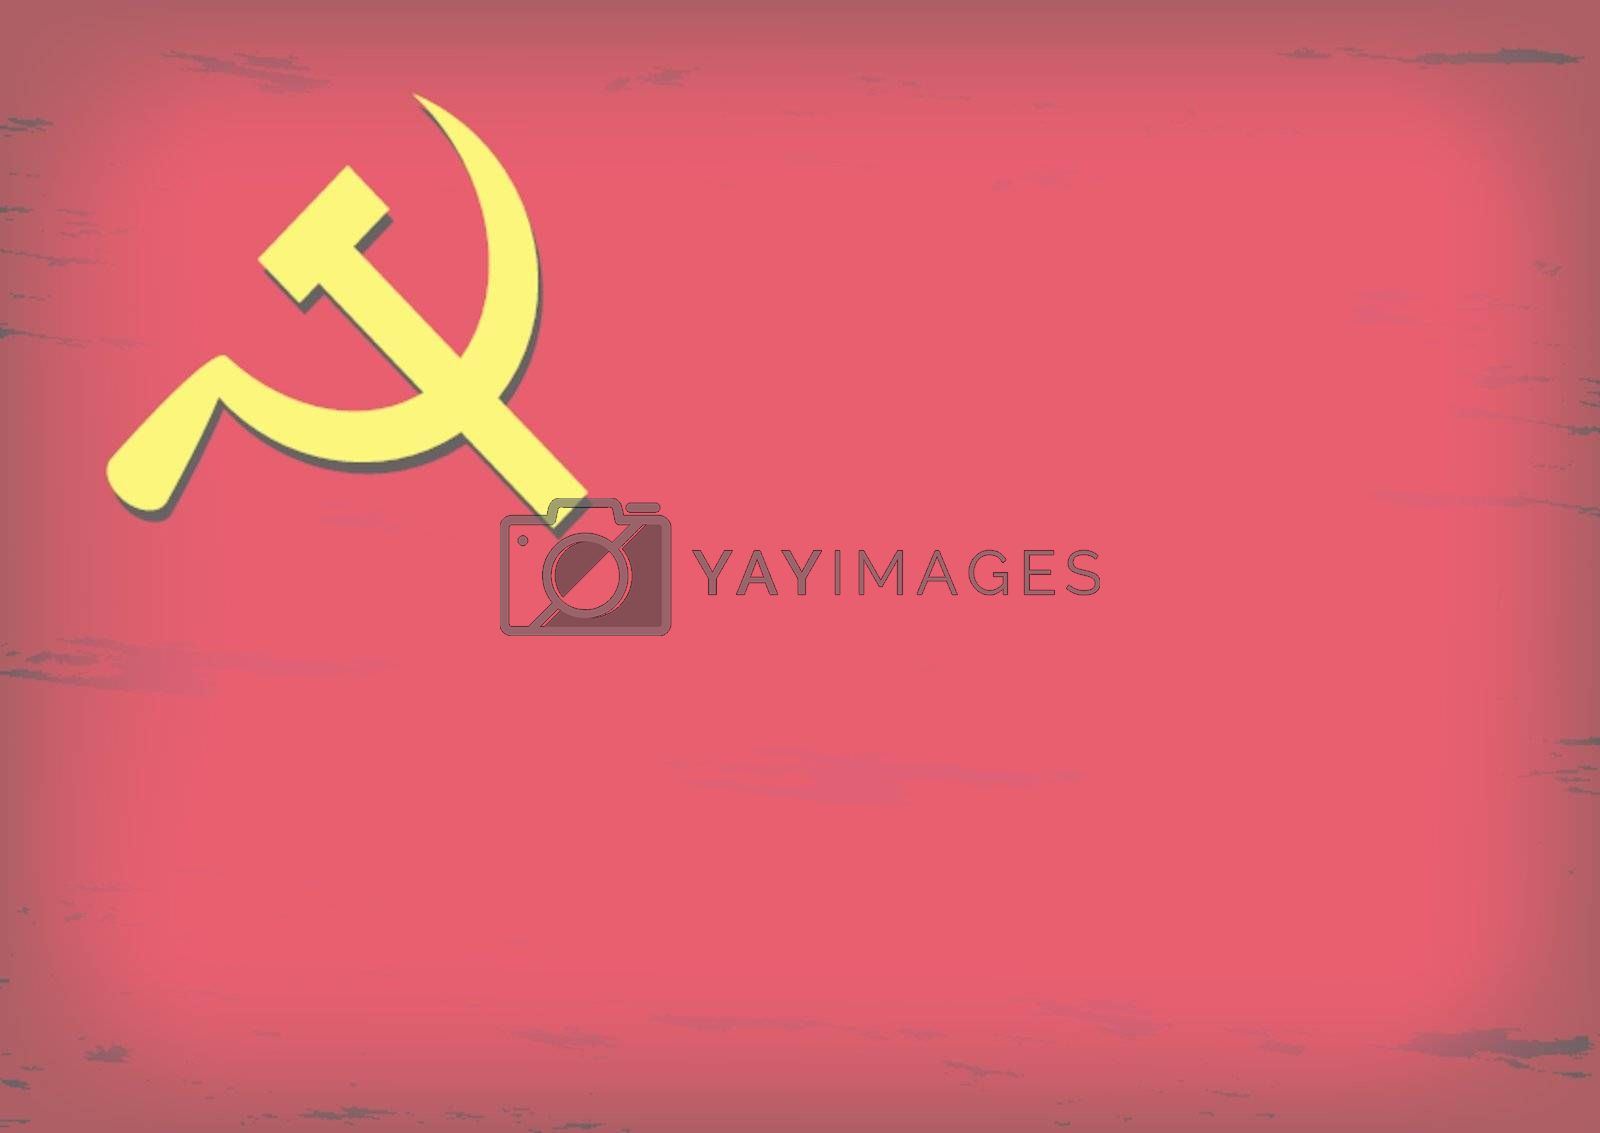 Royalty free image of Russian or Communist flags hammer and sickle, vector illustratio by Thanamat